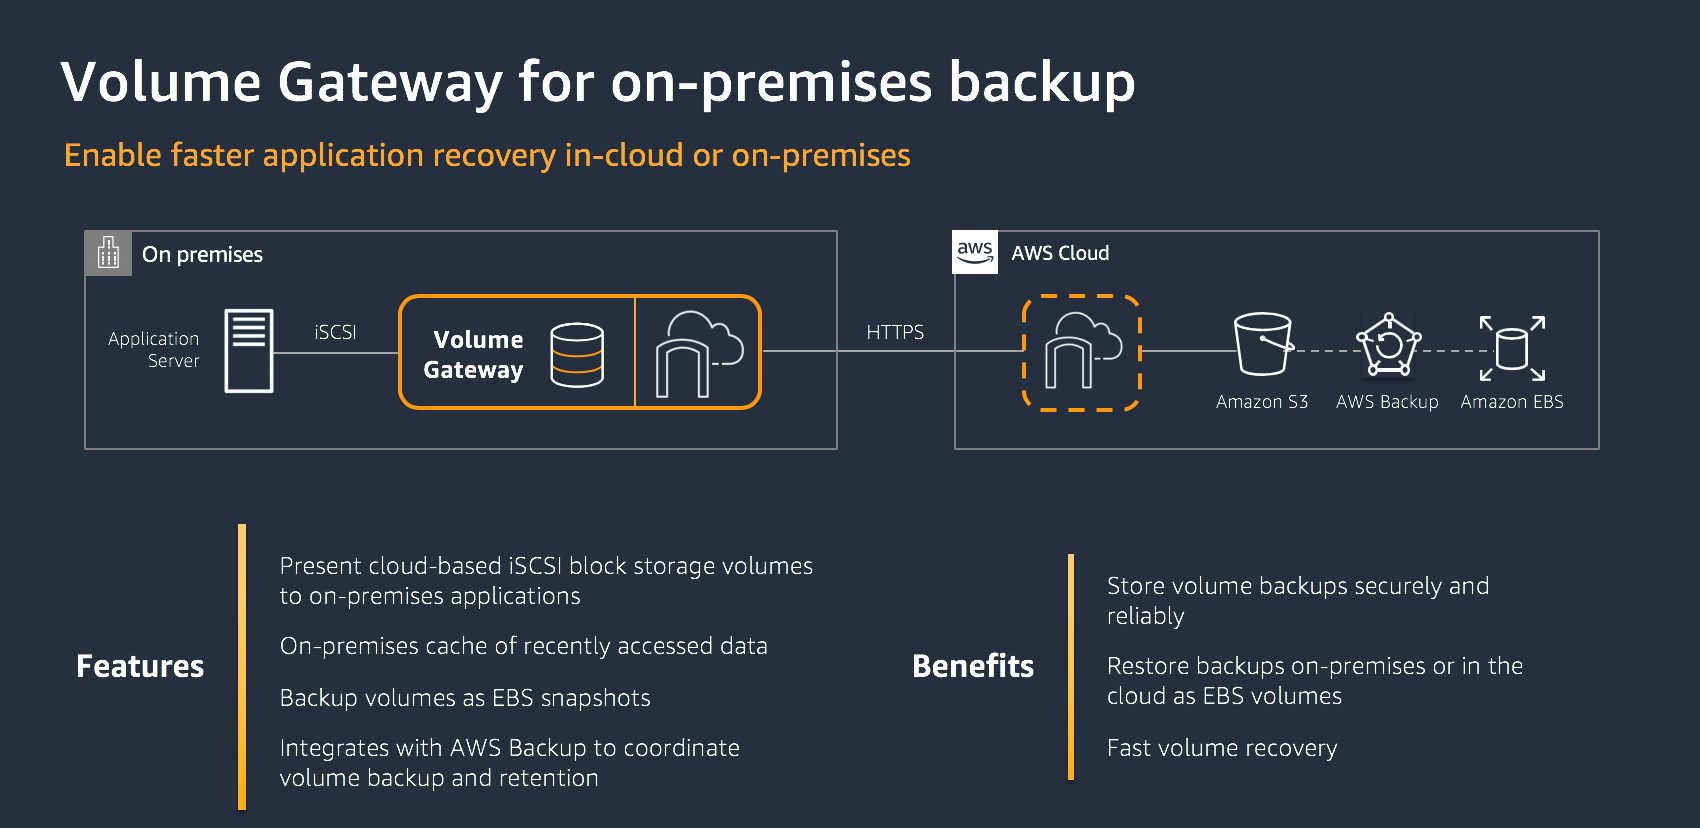 Volume gateway for on-premises backups